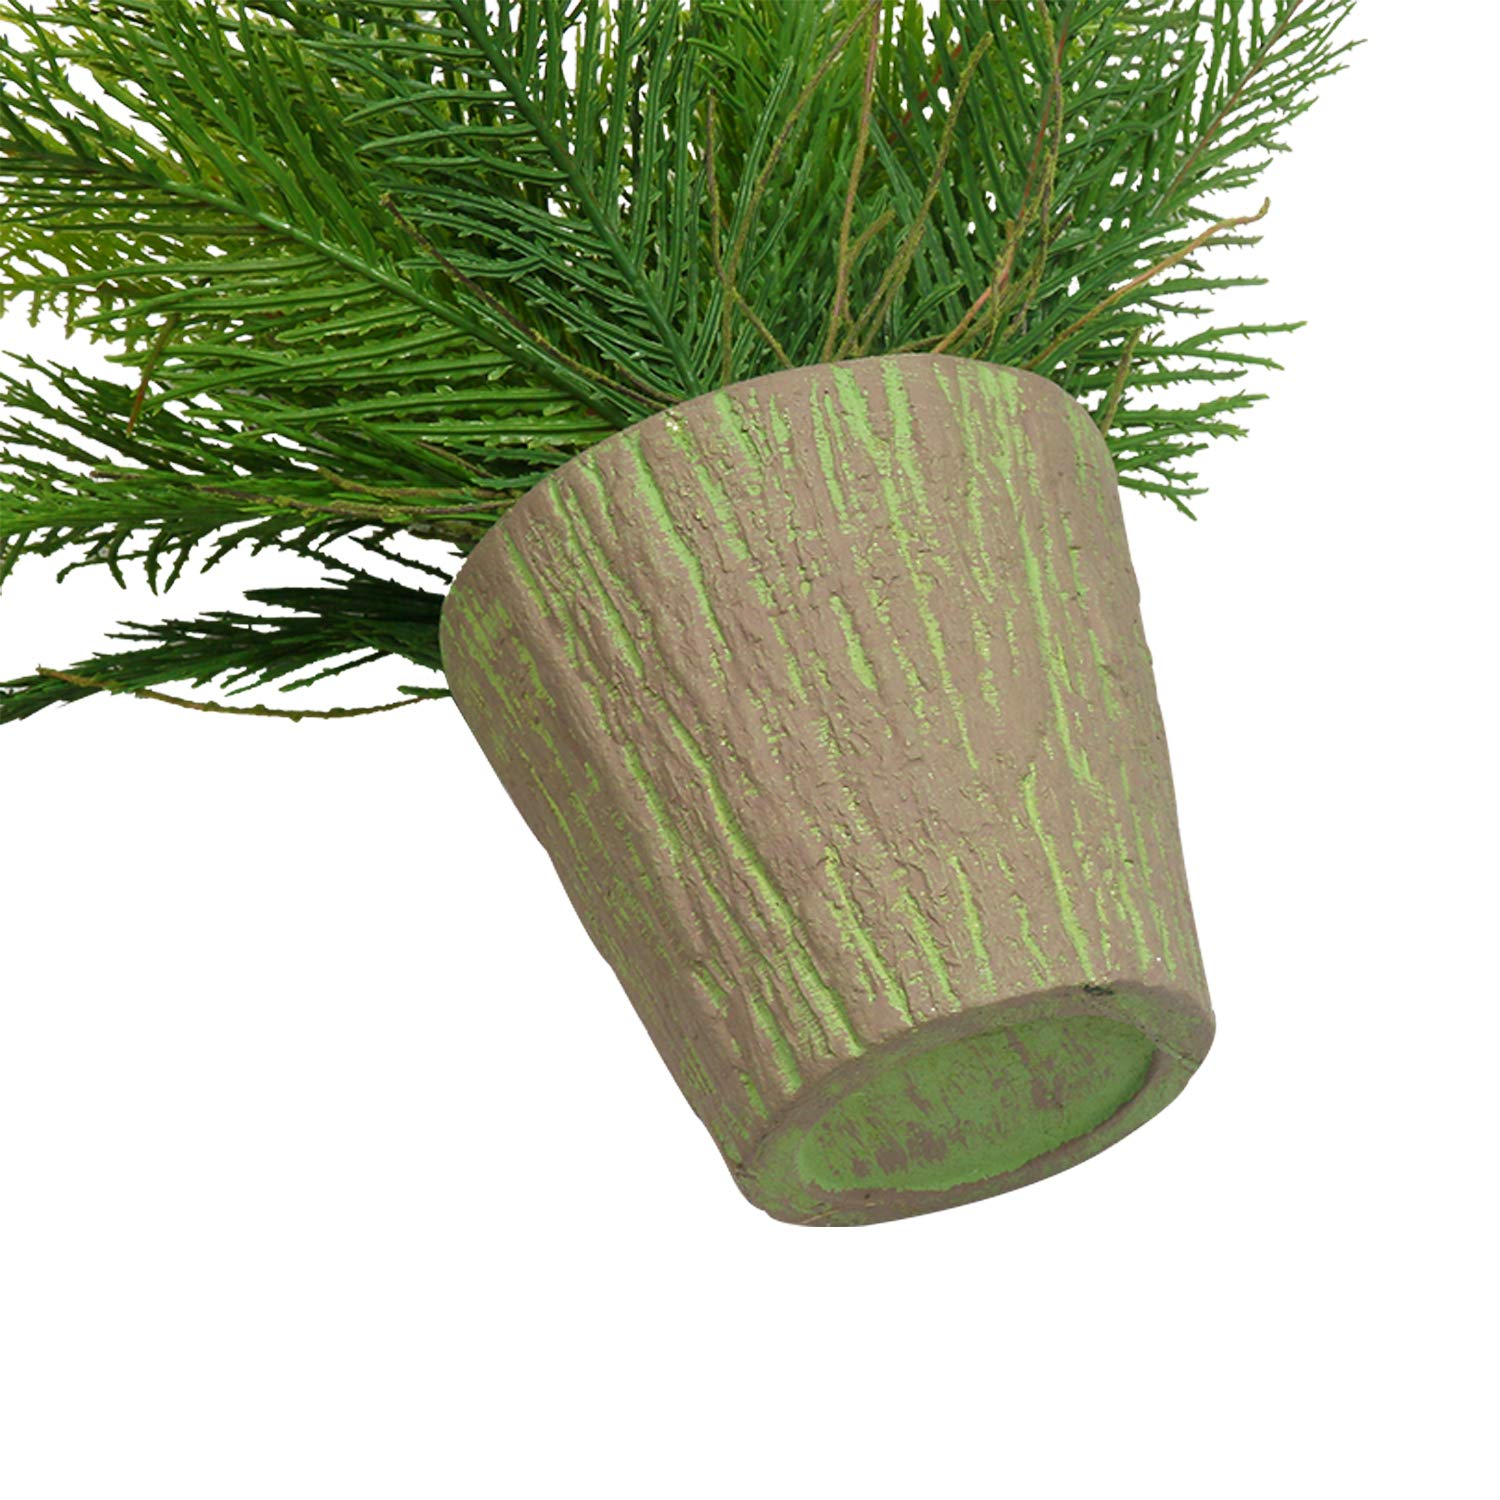 Eucalyptus SHACOS Large Artificial Potted Eucalyptus Plants 12x9 inches Set of 2 Potted Fake Green Plant Home Office Decor